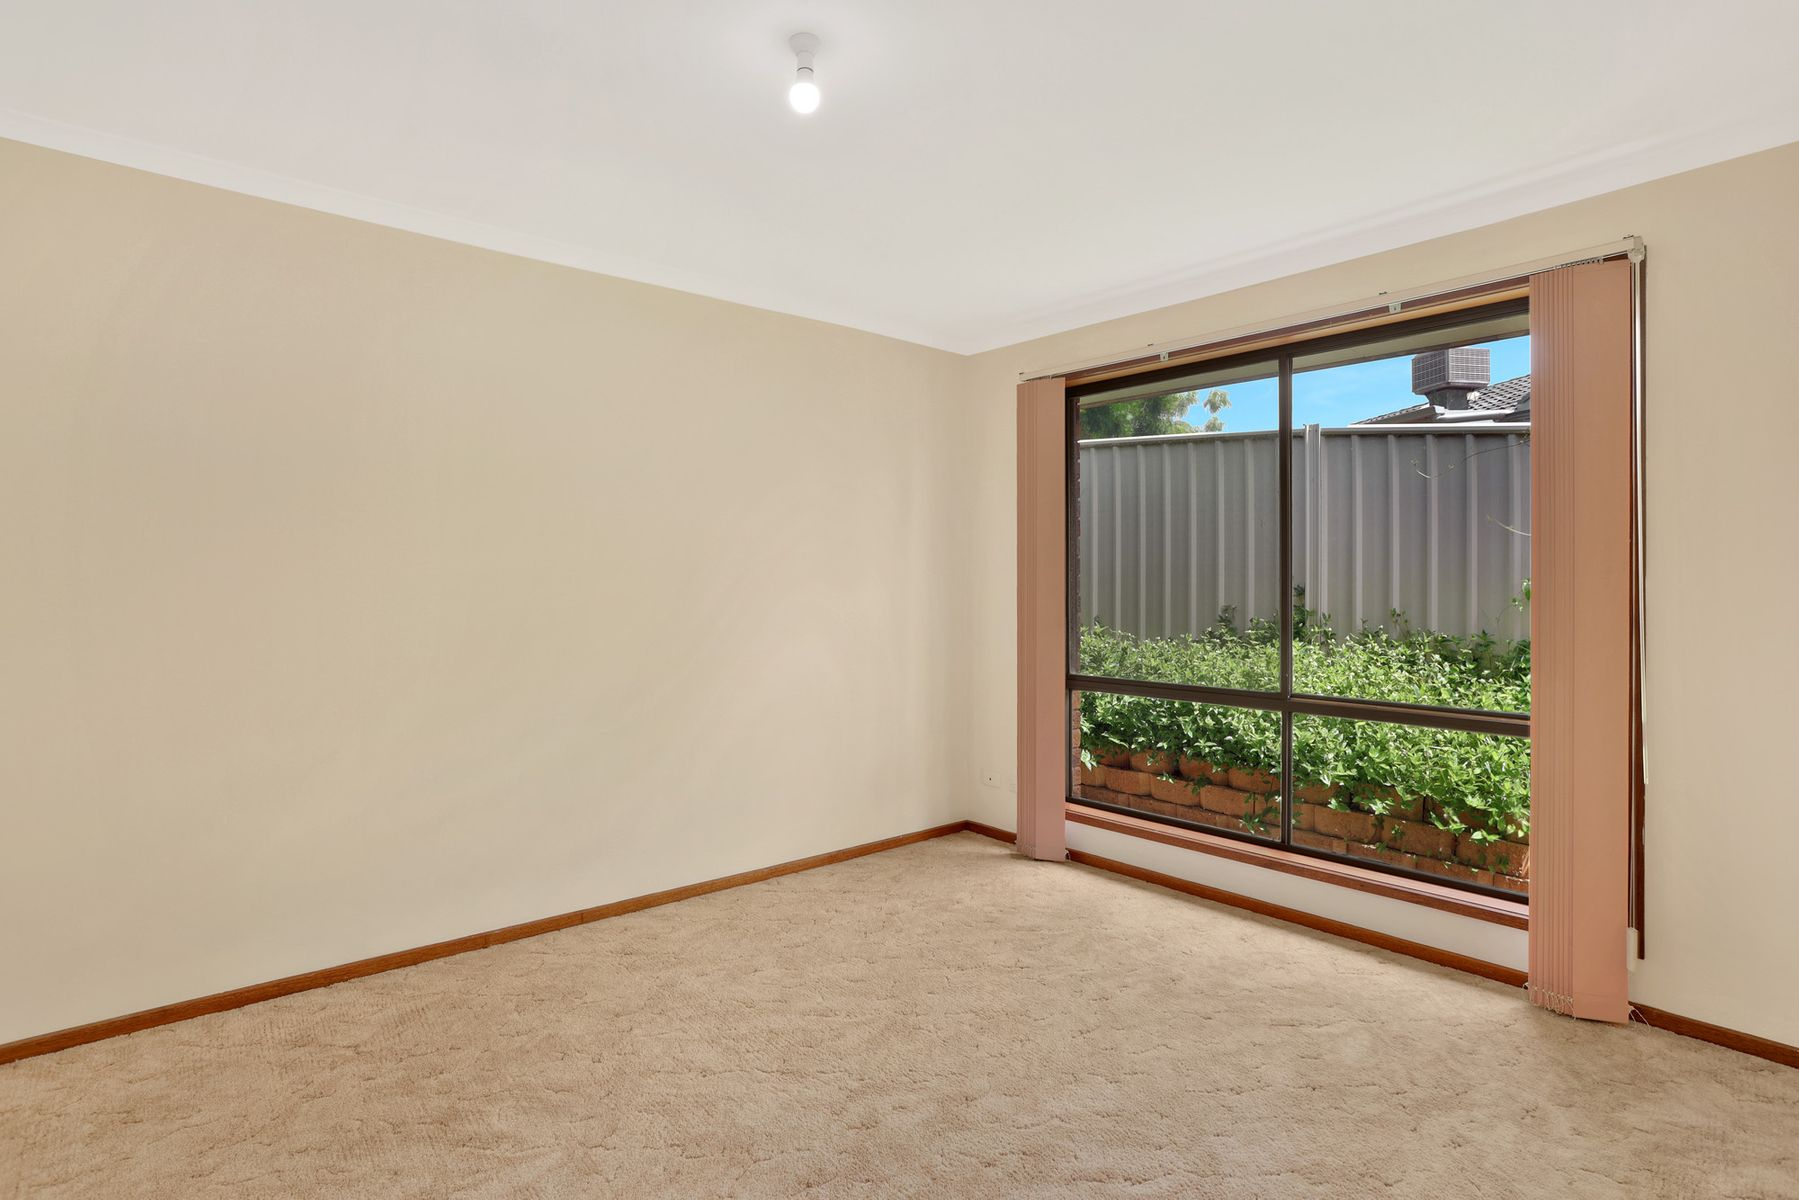 2/36 Butcher Street, Strathdale, VIC 3550